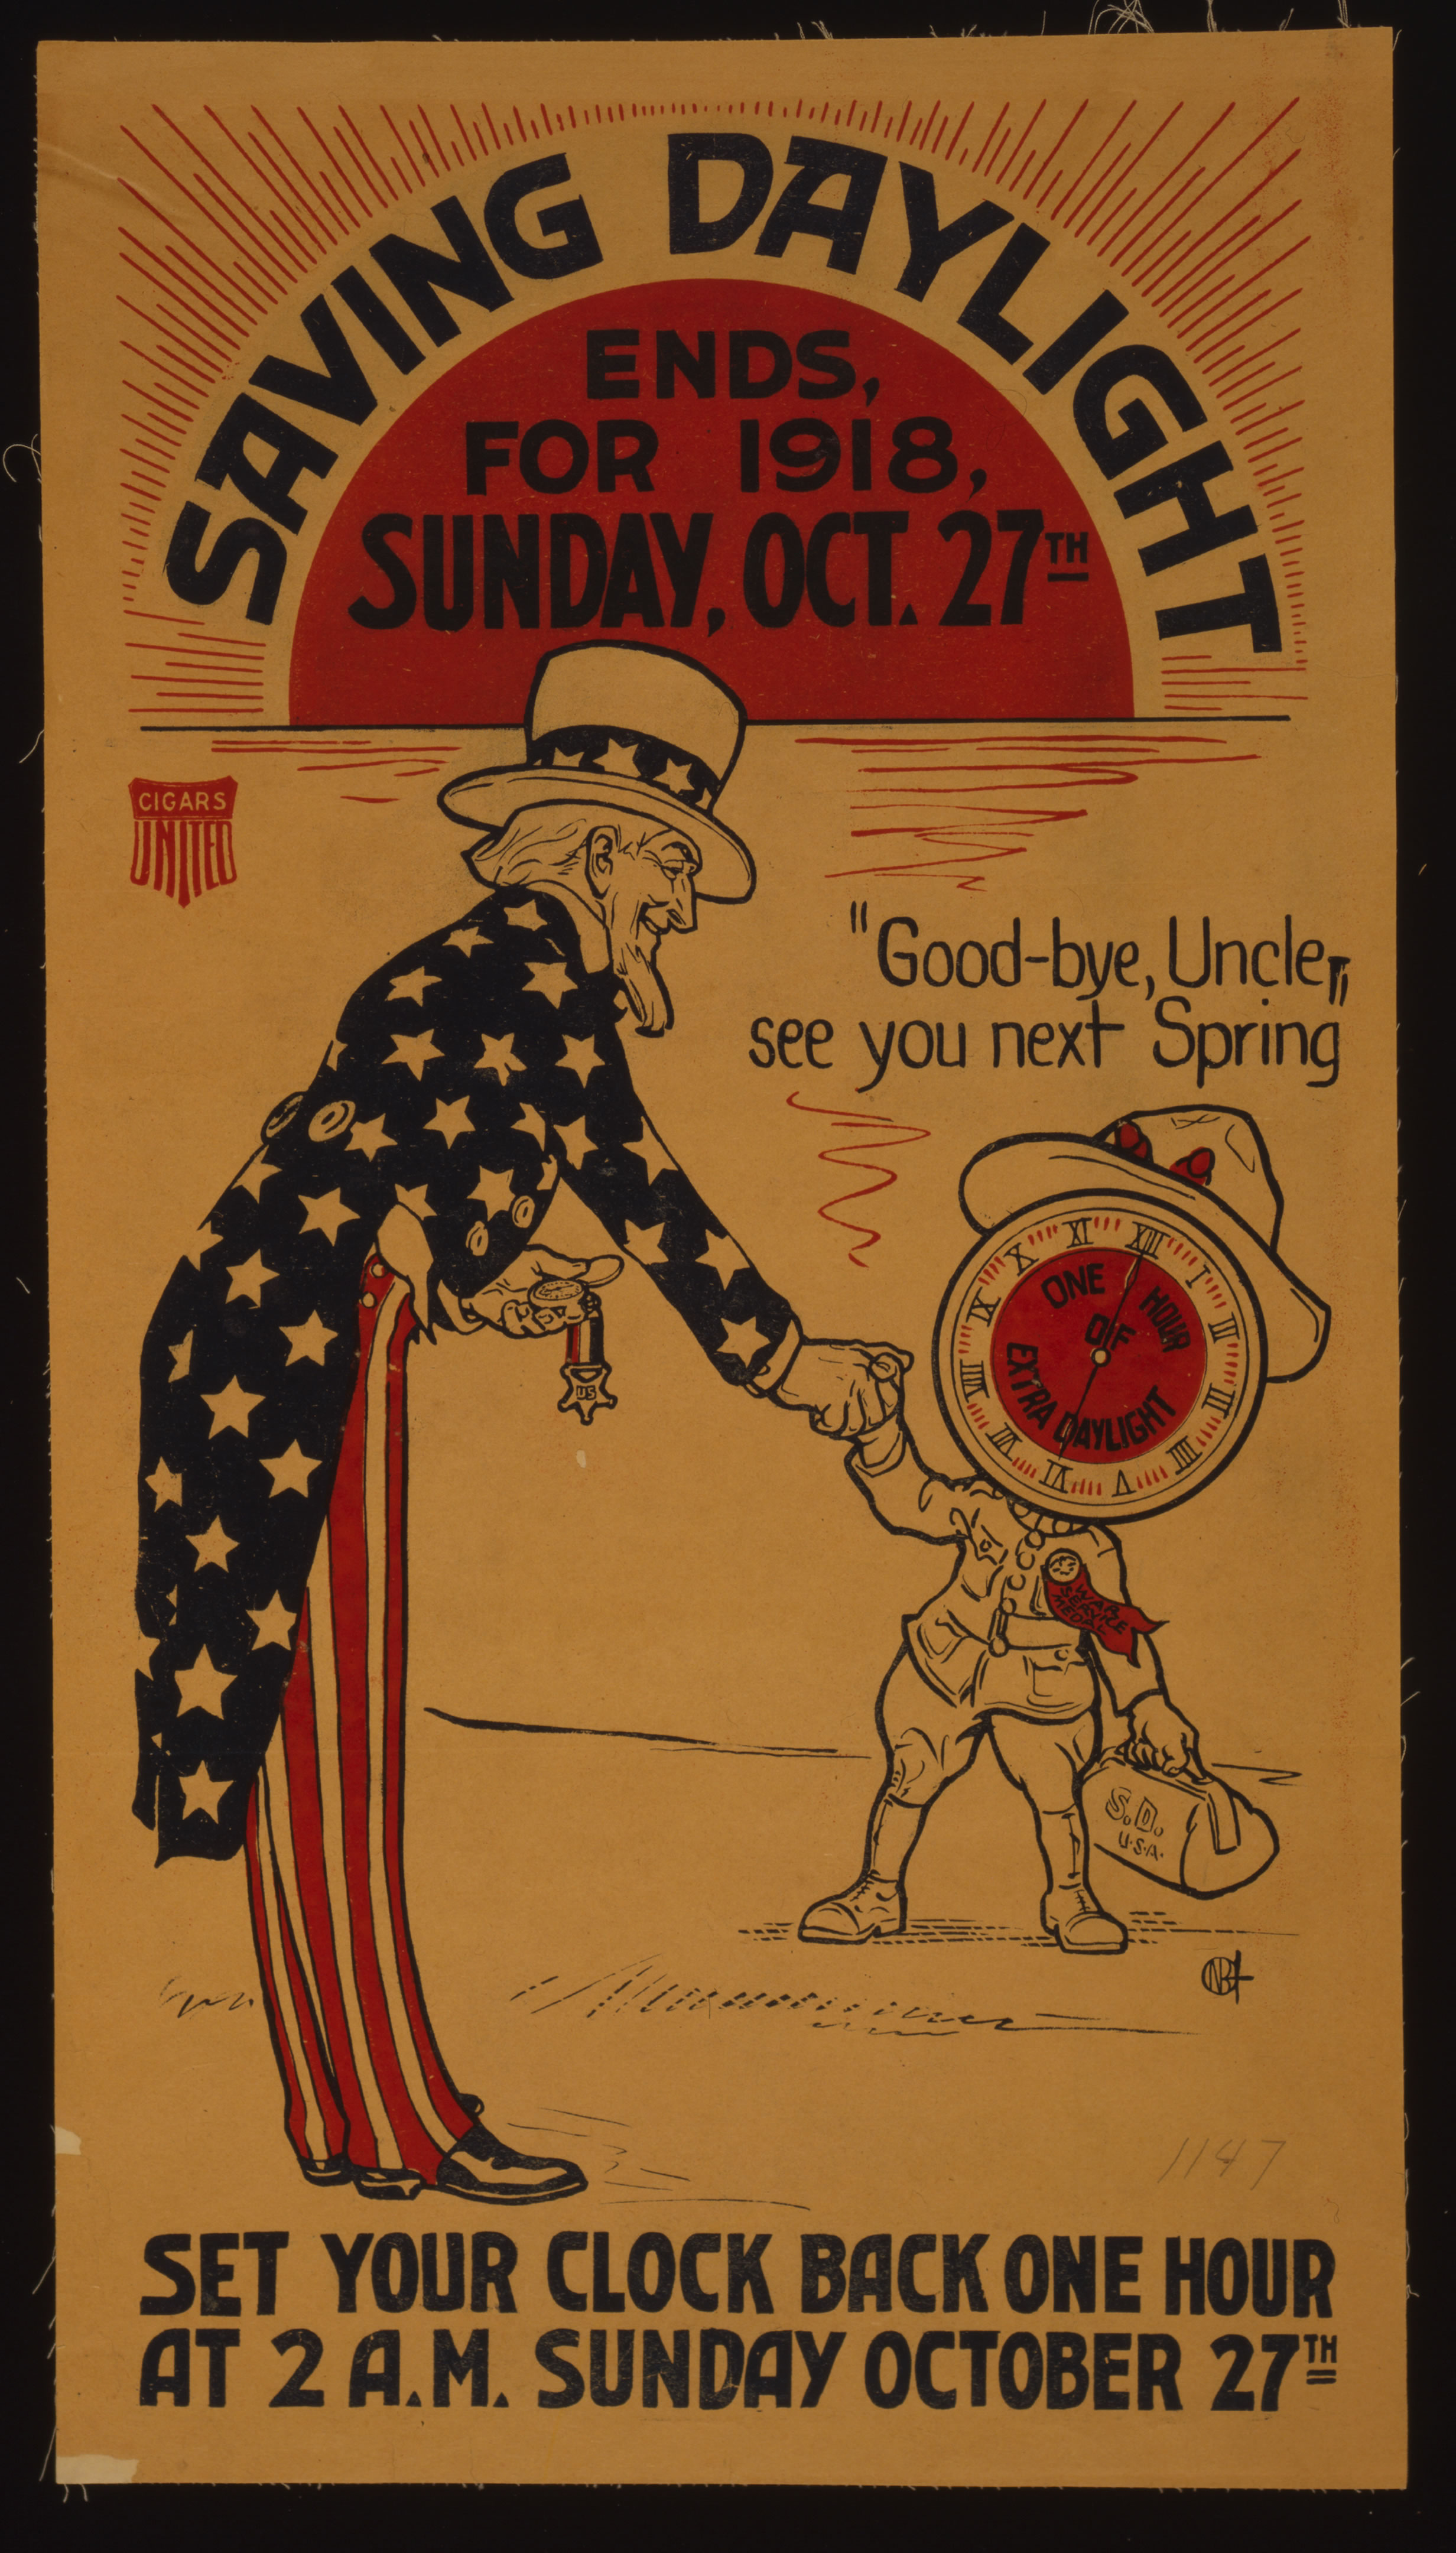 Broadside Accouncing End of Daylight Saving Time, 1918